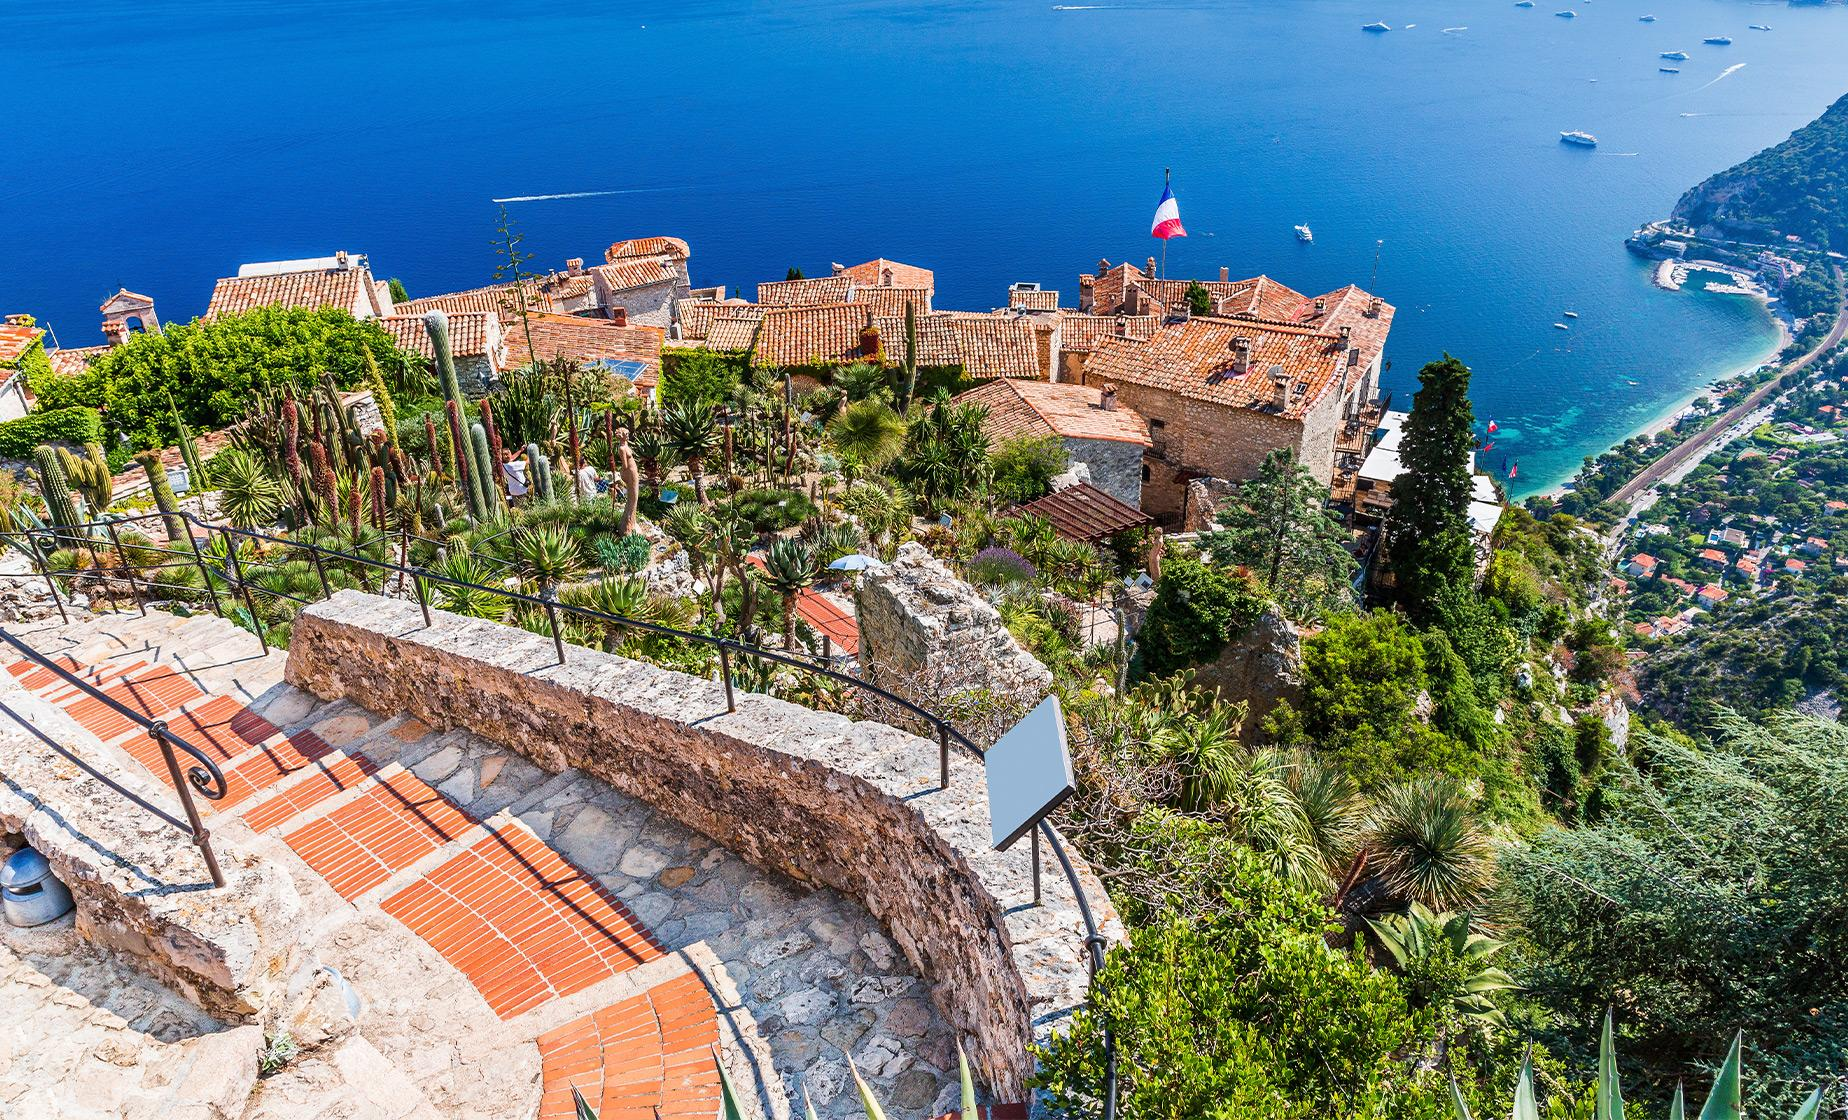 Monte Carlo, Eze and La Turbie Tour from Cannes (Royal Prince Palace, Casino Square)